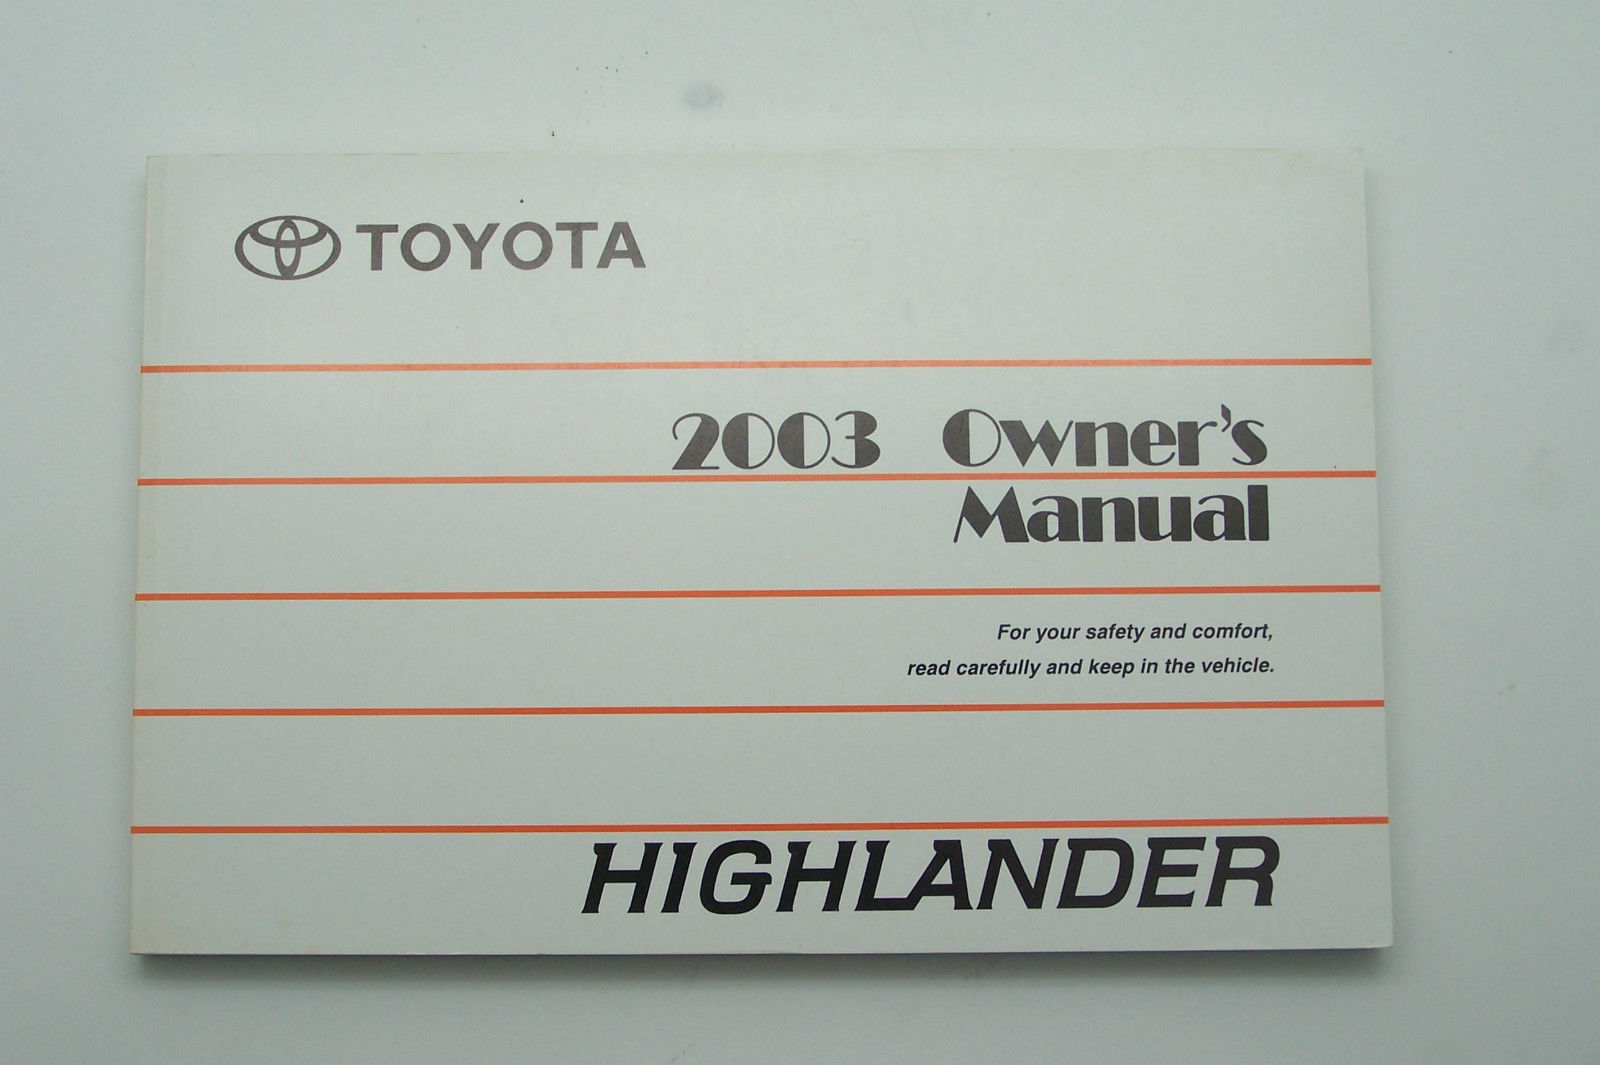 2003 Toyota Highlander Owners Manual Parts And 50 Similar Items